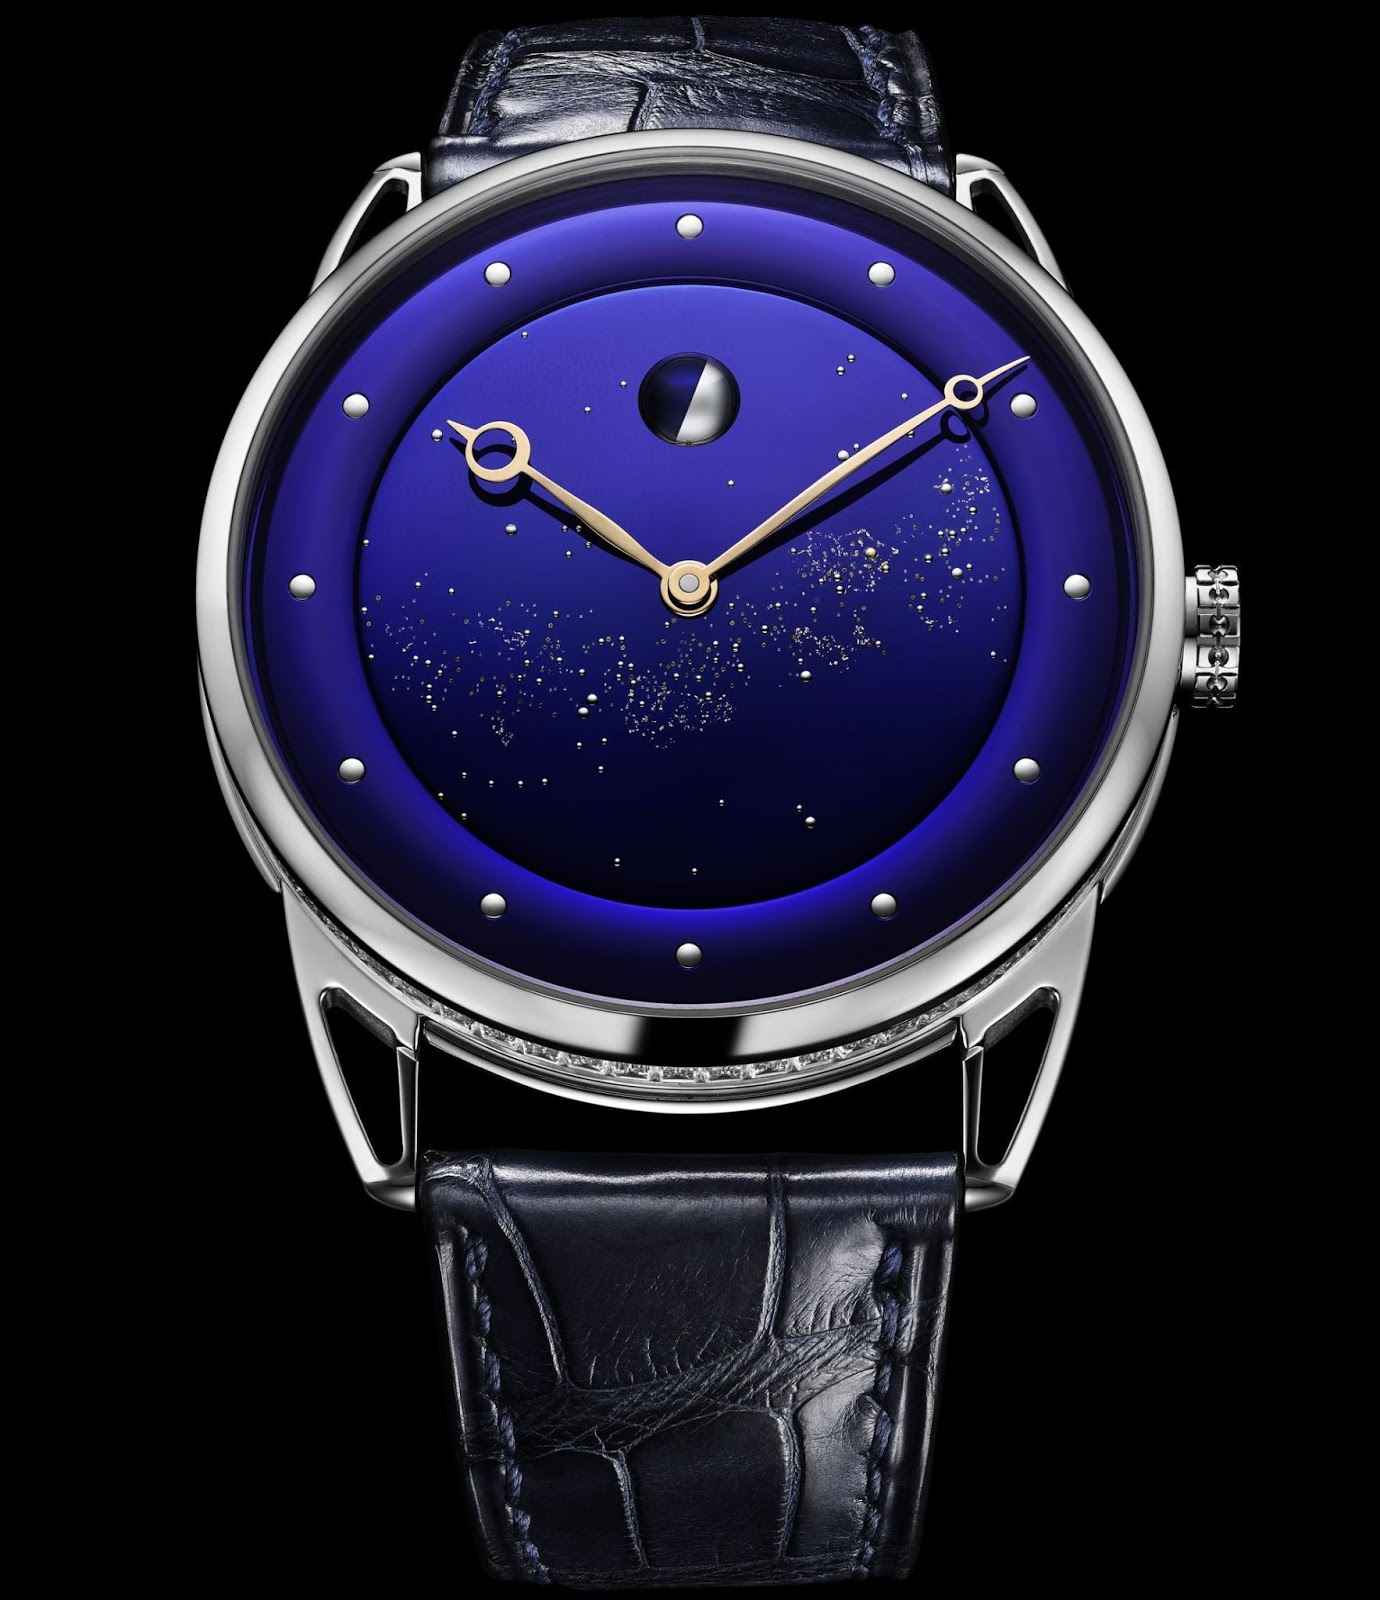 a27508085b De Bethune Manufacture's craftsmen have used an artful combination of  elements and materials to encapsulate in gold and glass a few drops of the  essence of ...